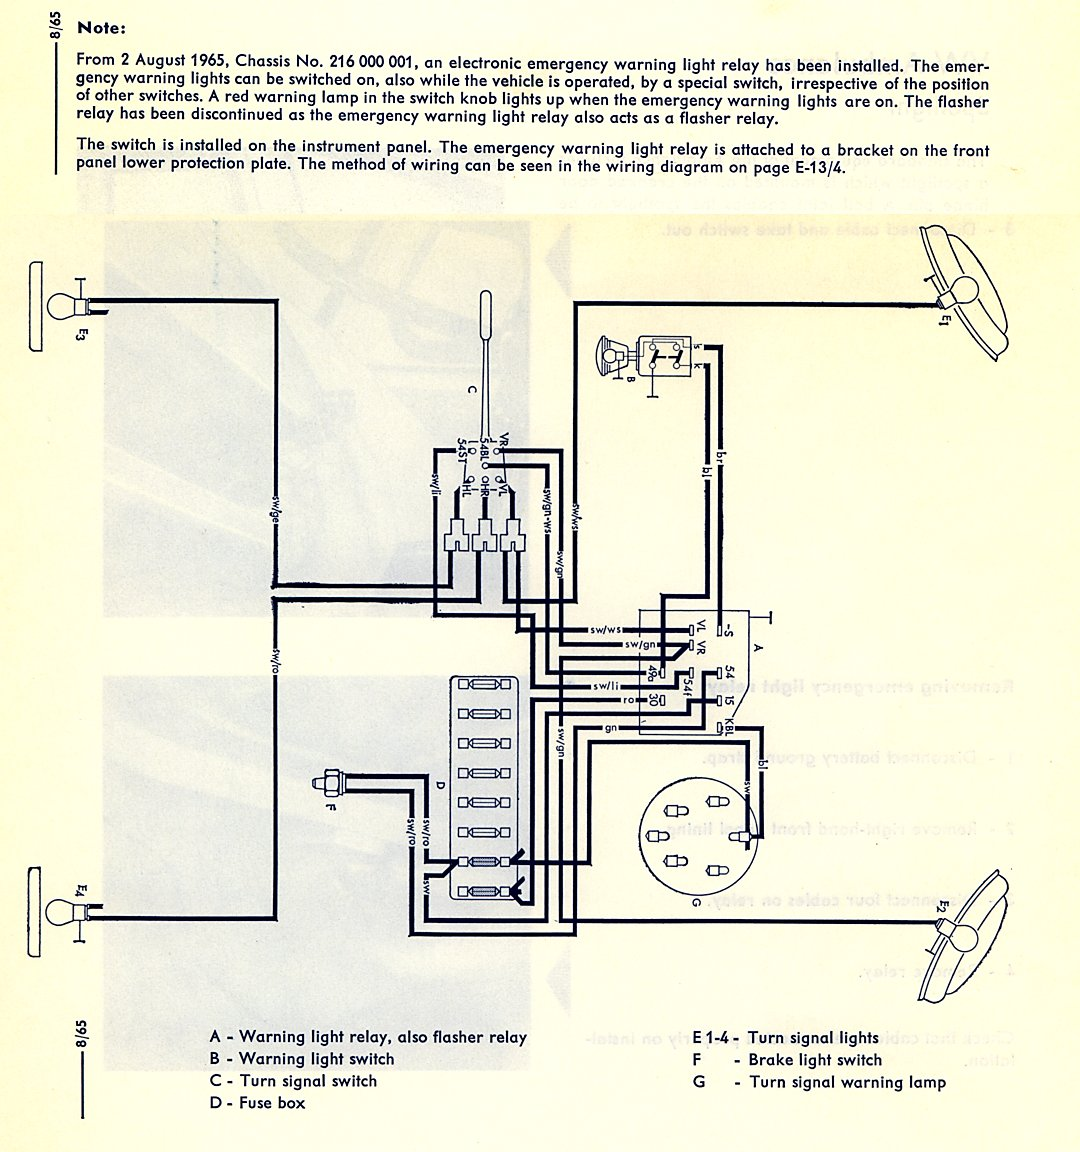 TheSamba.com :: Type 2 Wiring Diagrams on 1957 vw wiring diagram, 1970 vw beetle wiring diagram, 1960 vw steering, 1960 vw headlights, 1960 vw fuel tank, 1960 vw engine, 67 vw wiring diagram, 1979 vw beetle wiring diagram, 1968 vw beetle wiring diagram, 1960 vw motor, 1973 vw wiring diagram, 1972 vw wiring diagram, 70 vw wiring diagram, 1969 vw wiring diagram,